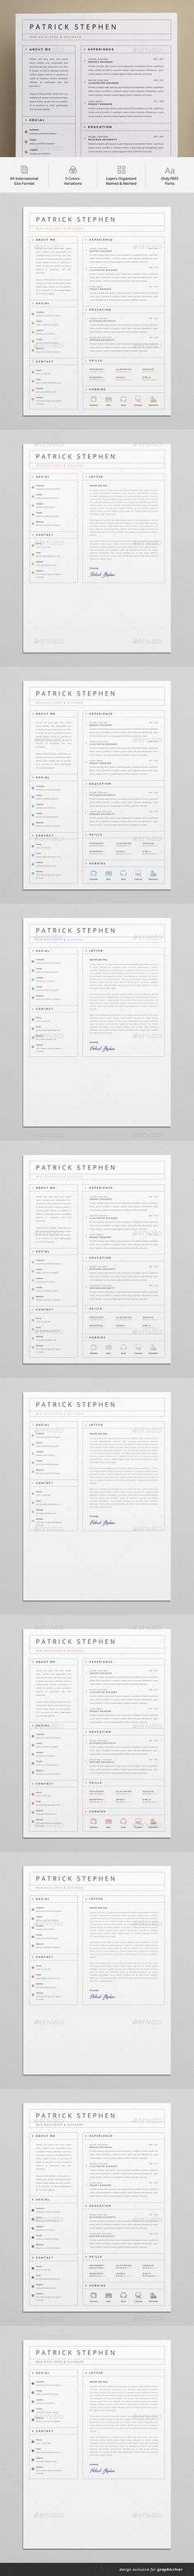 #Resume - Resumes #Stationery Download here: https://graphicriver.net/item/resume/19328606?ref=alena994